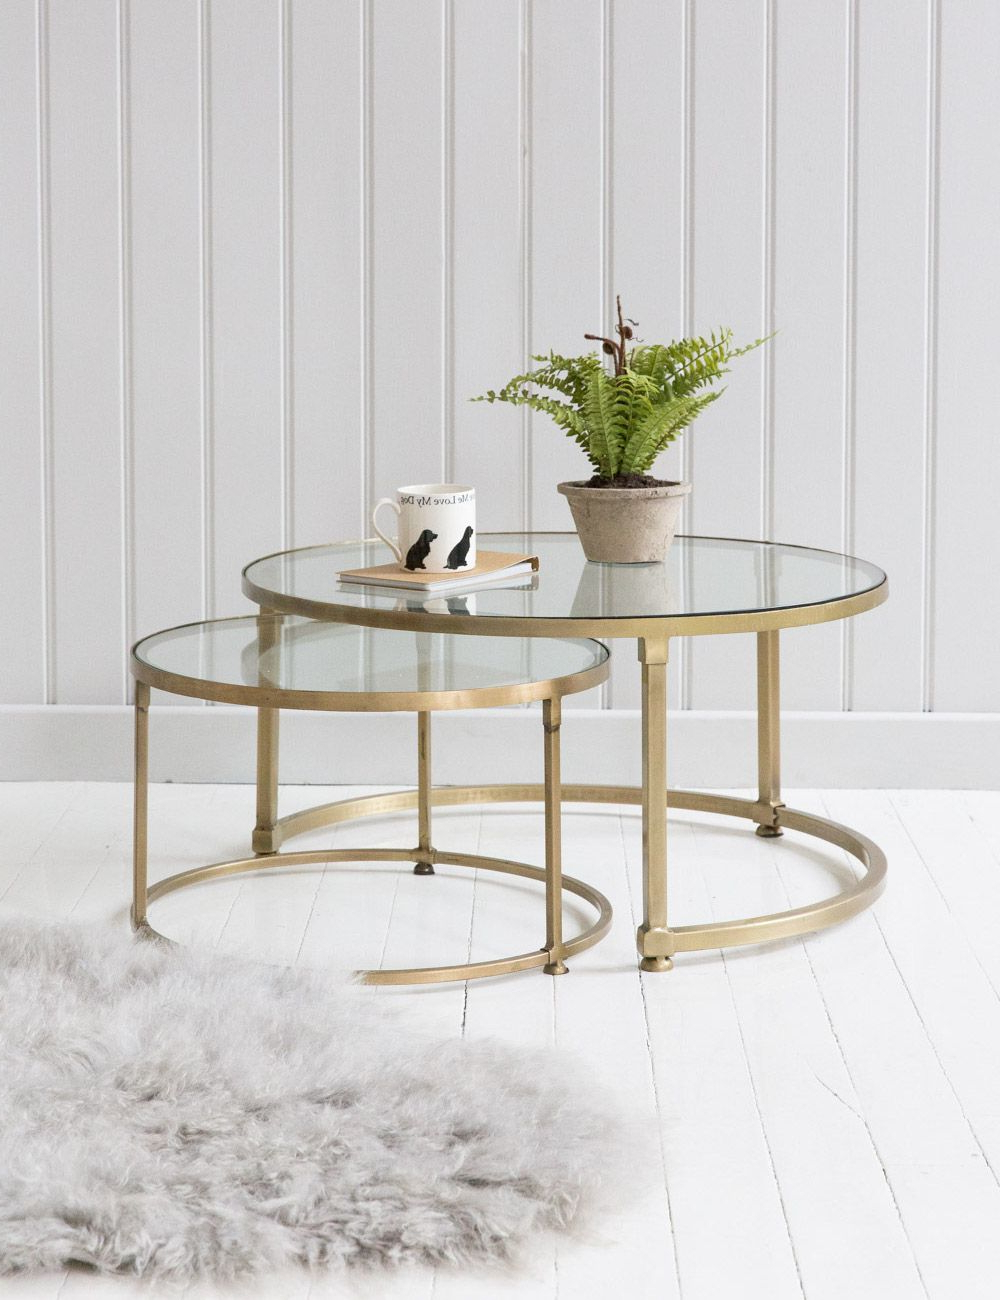 House Decor Intended For Well Known 2 Tone Grey And White Marble Coffee Tables (View 10 of 20)